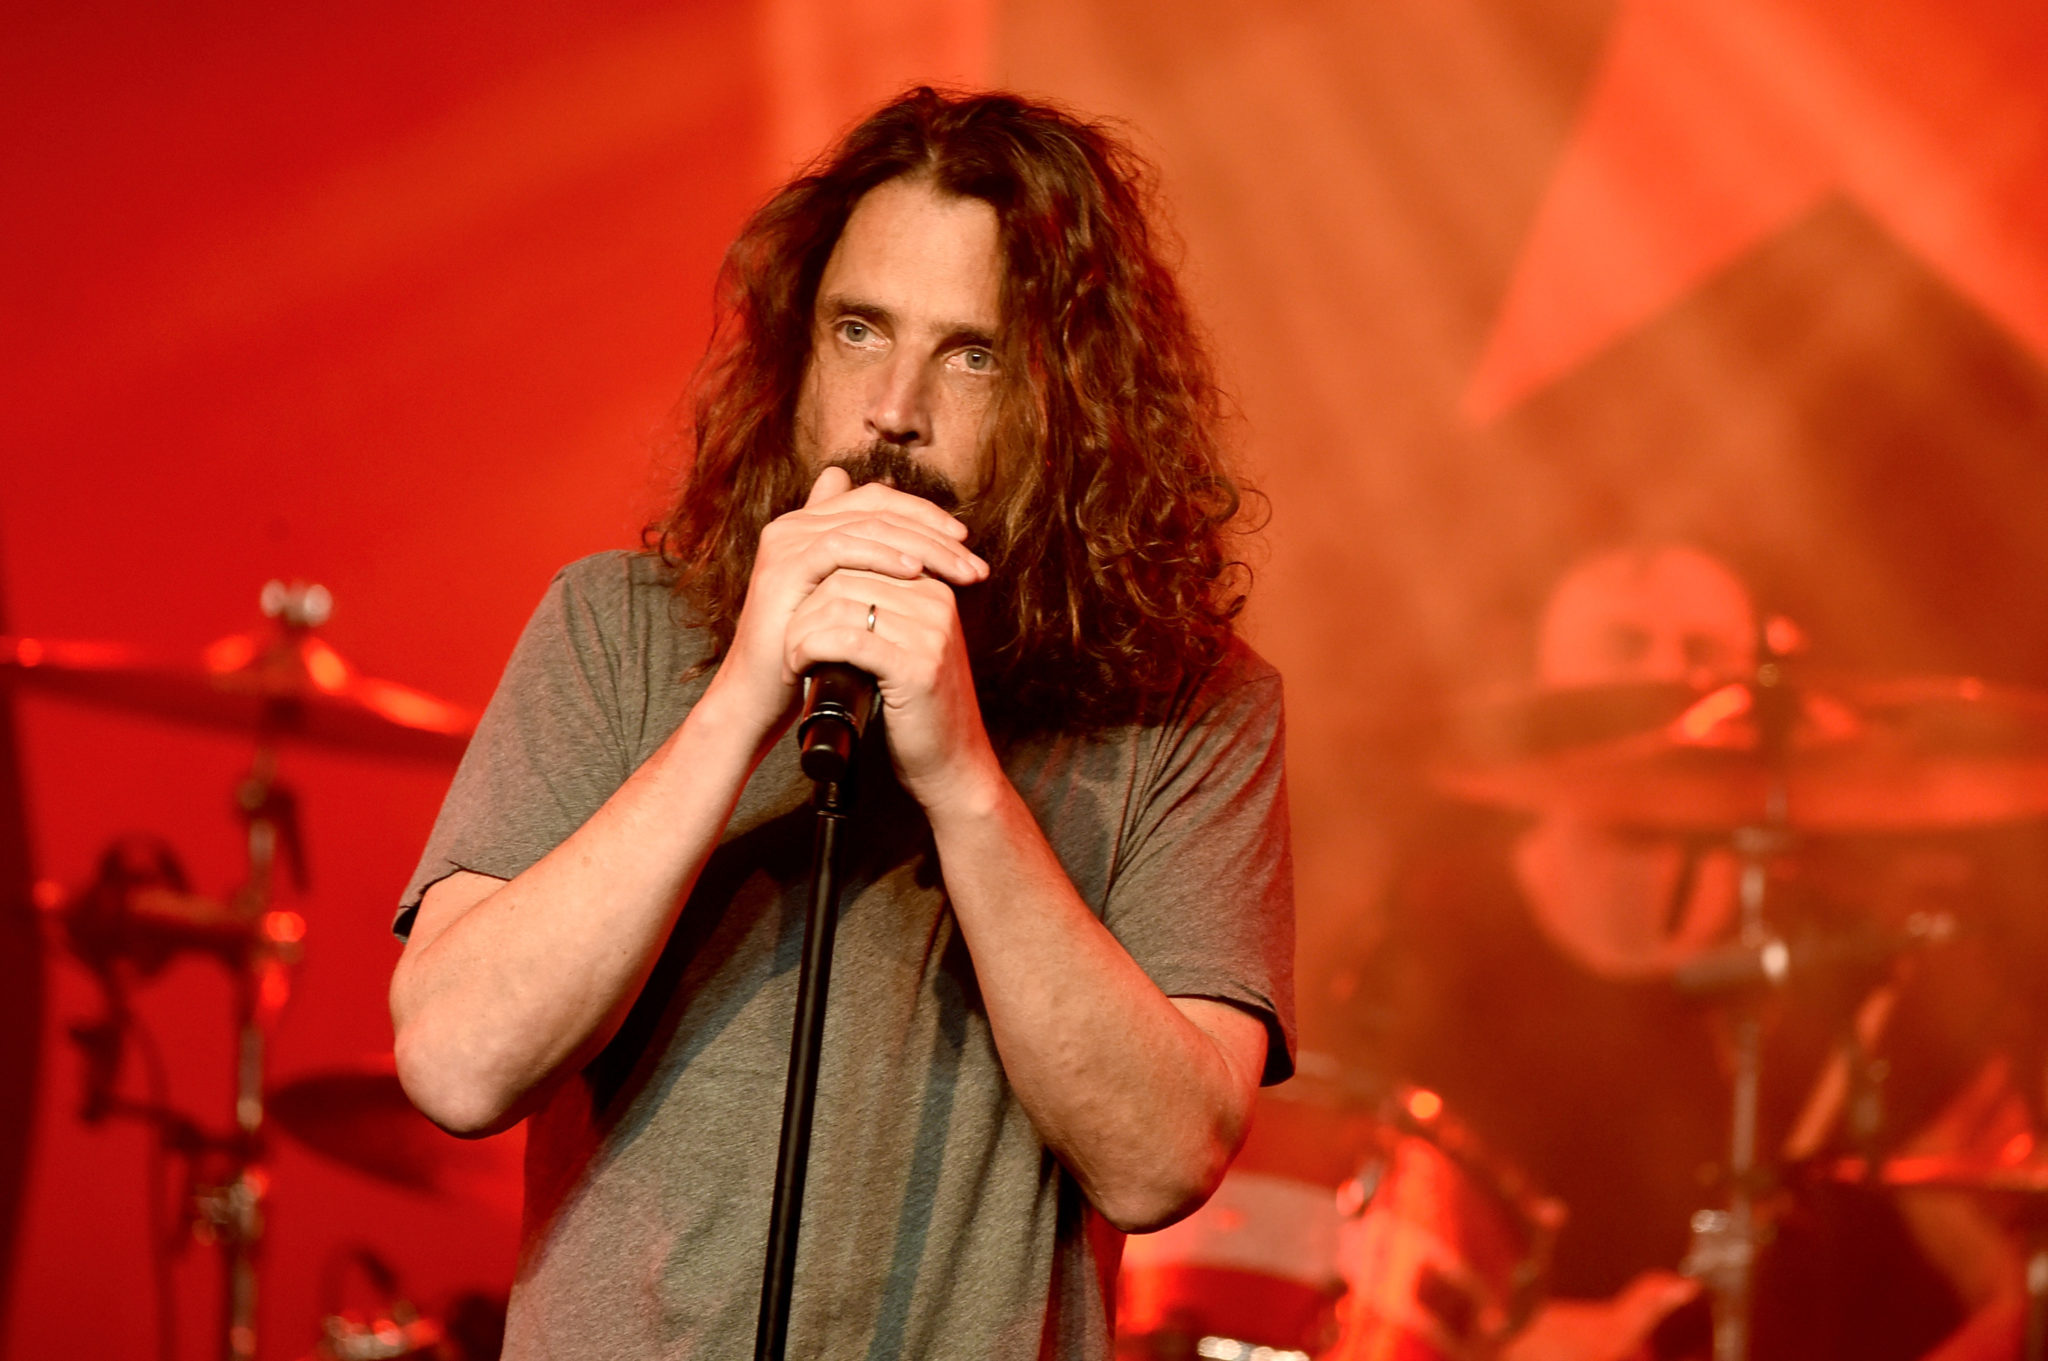 Chris Cornell, frontman for Soundgarden and Audioslave, has passed away at 52